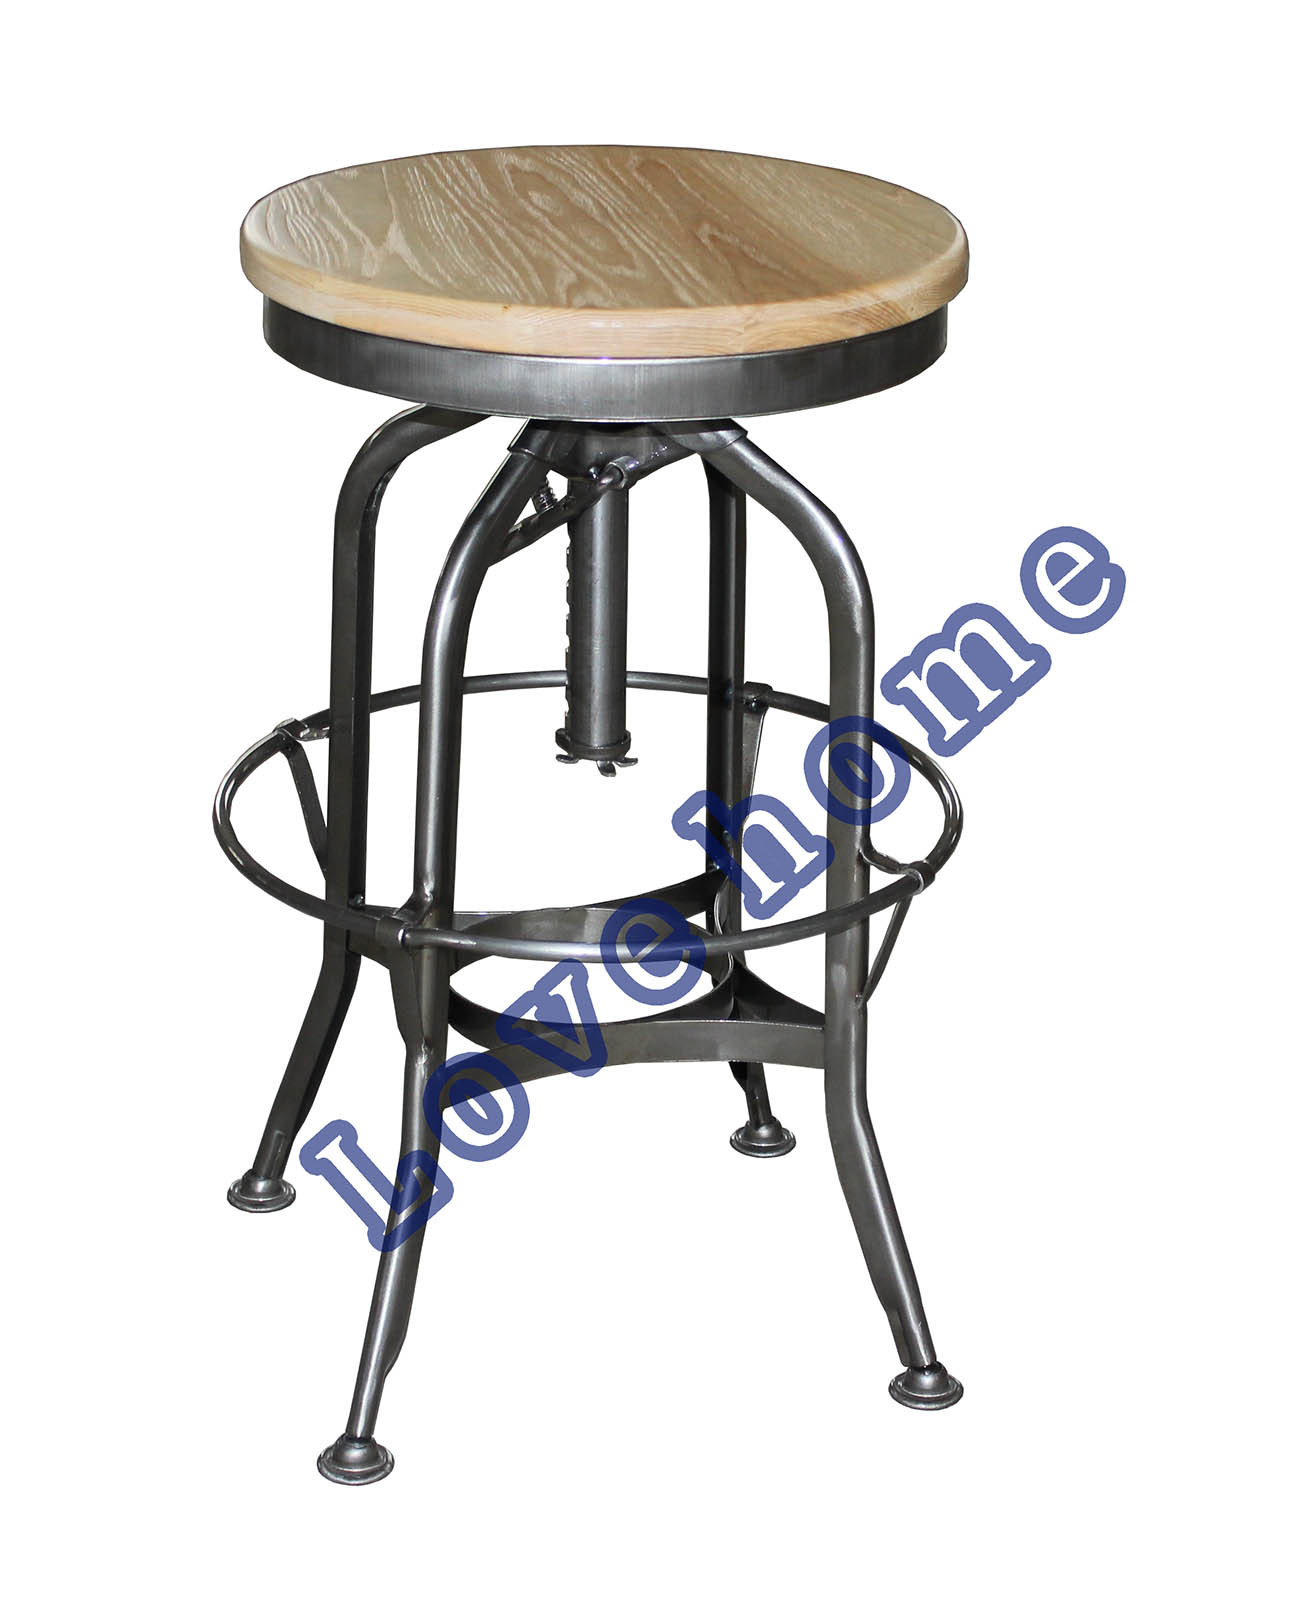 Industrial Metal Furniture Steel Turner Vintage Toledo Bar Stools